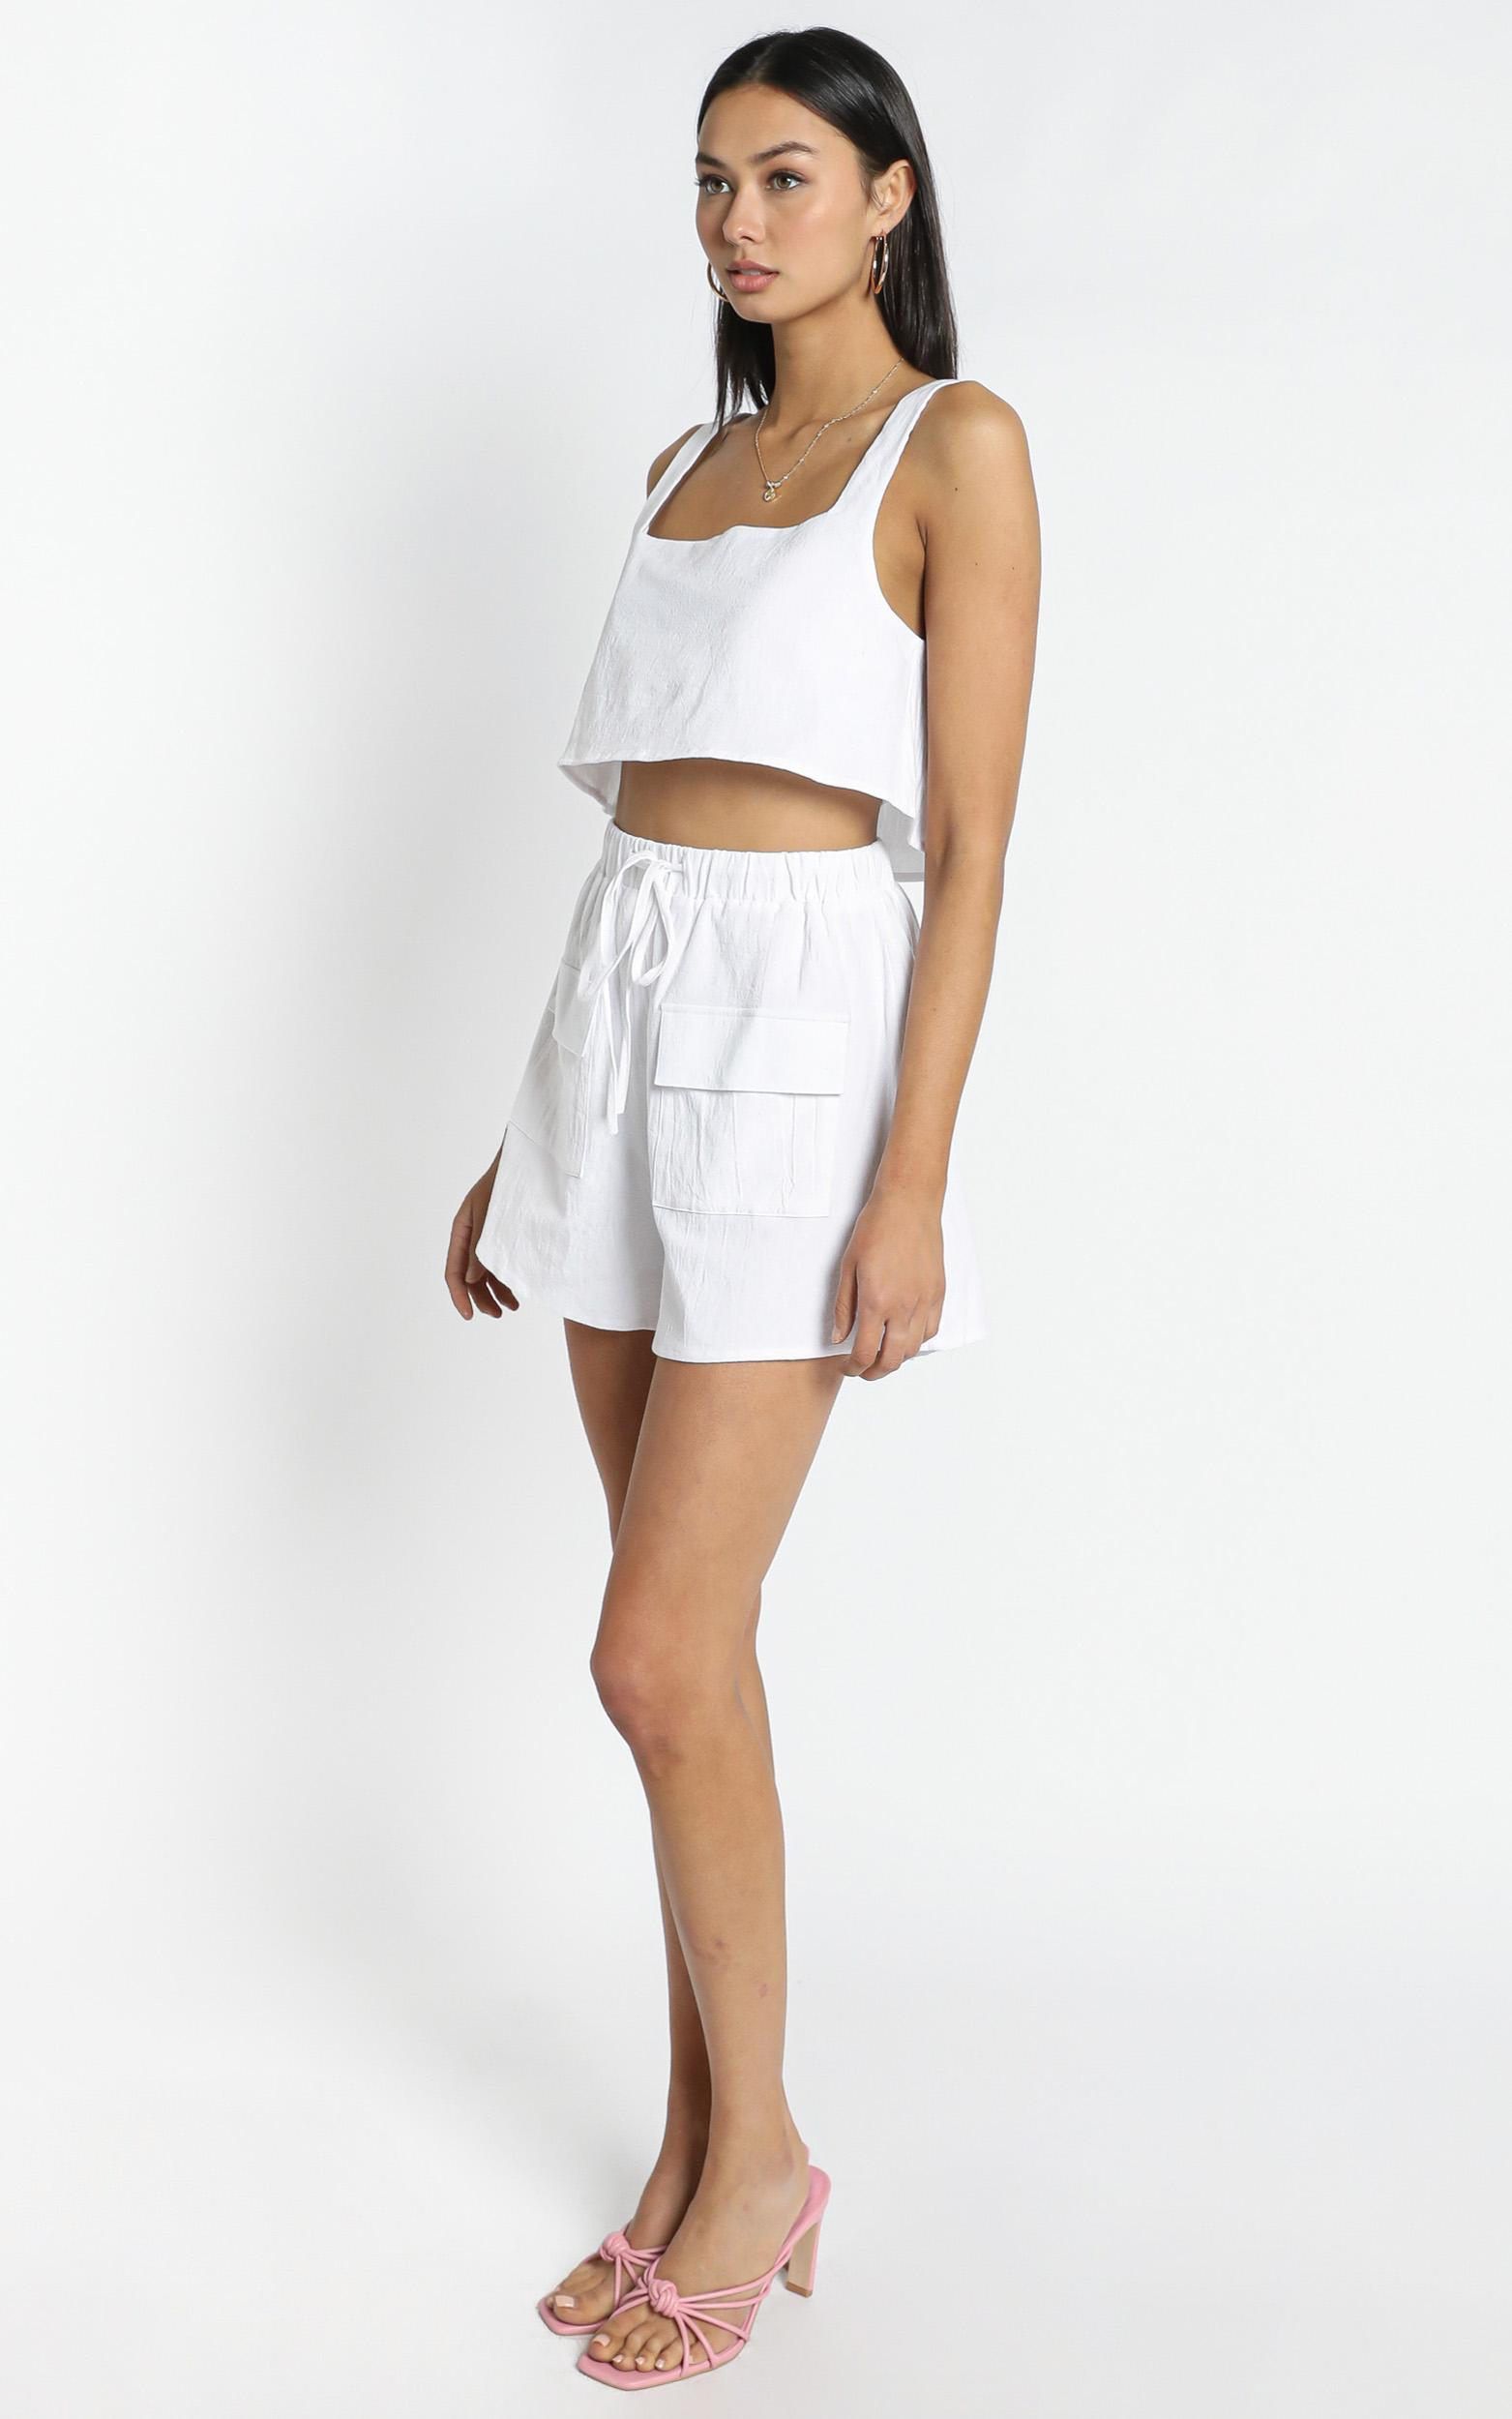 Starlight Shorts in White - 12 (L), White, hi-res image number null